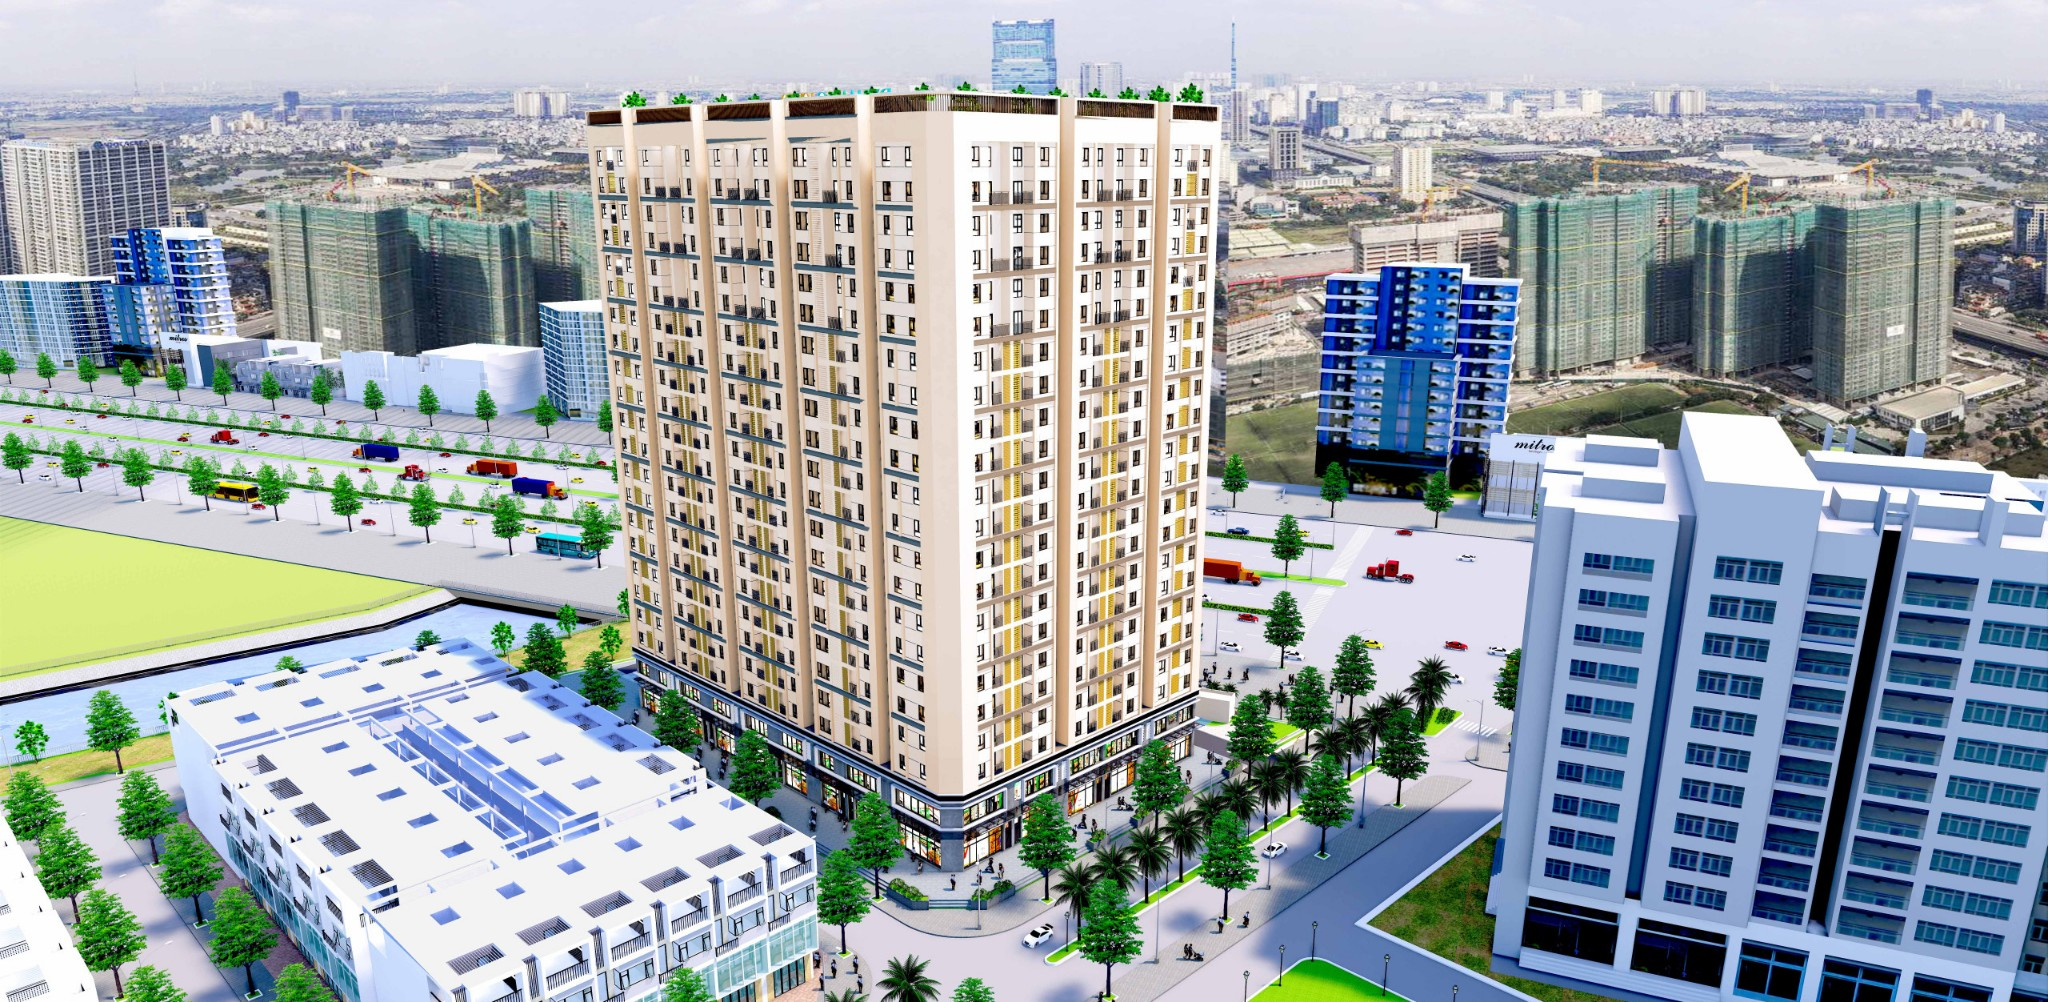 phoi canh dynamic tower